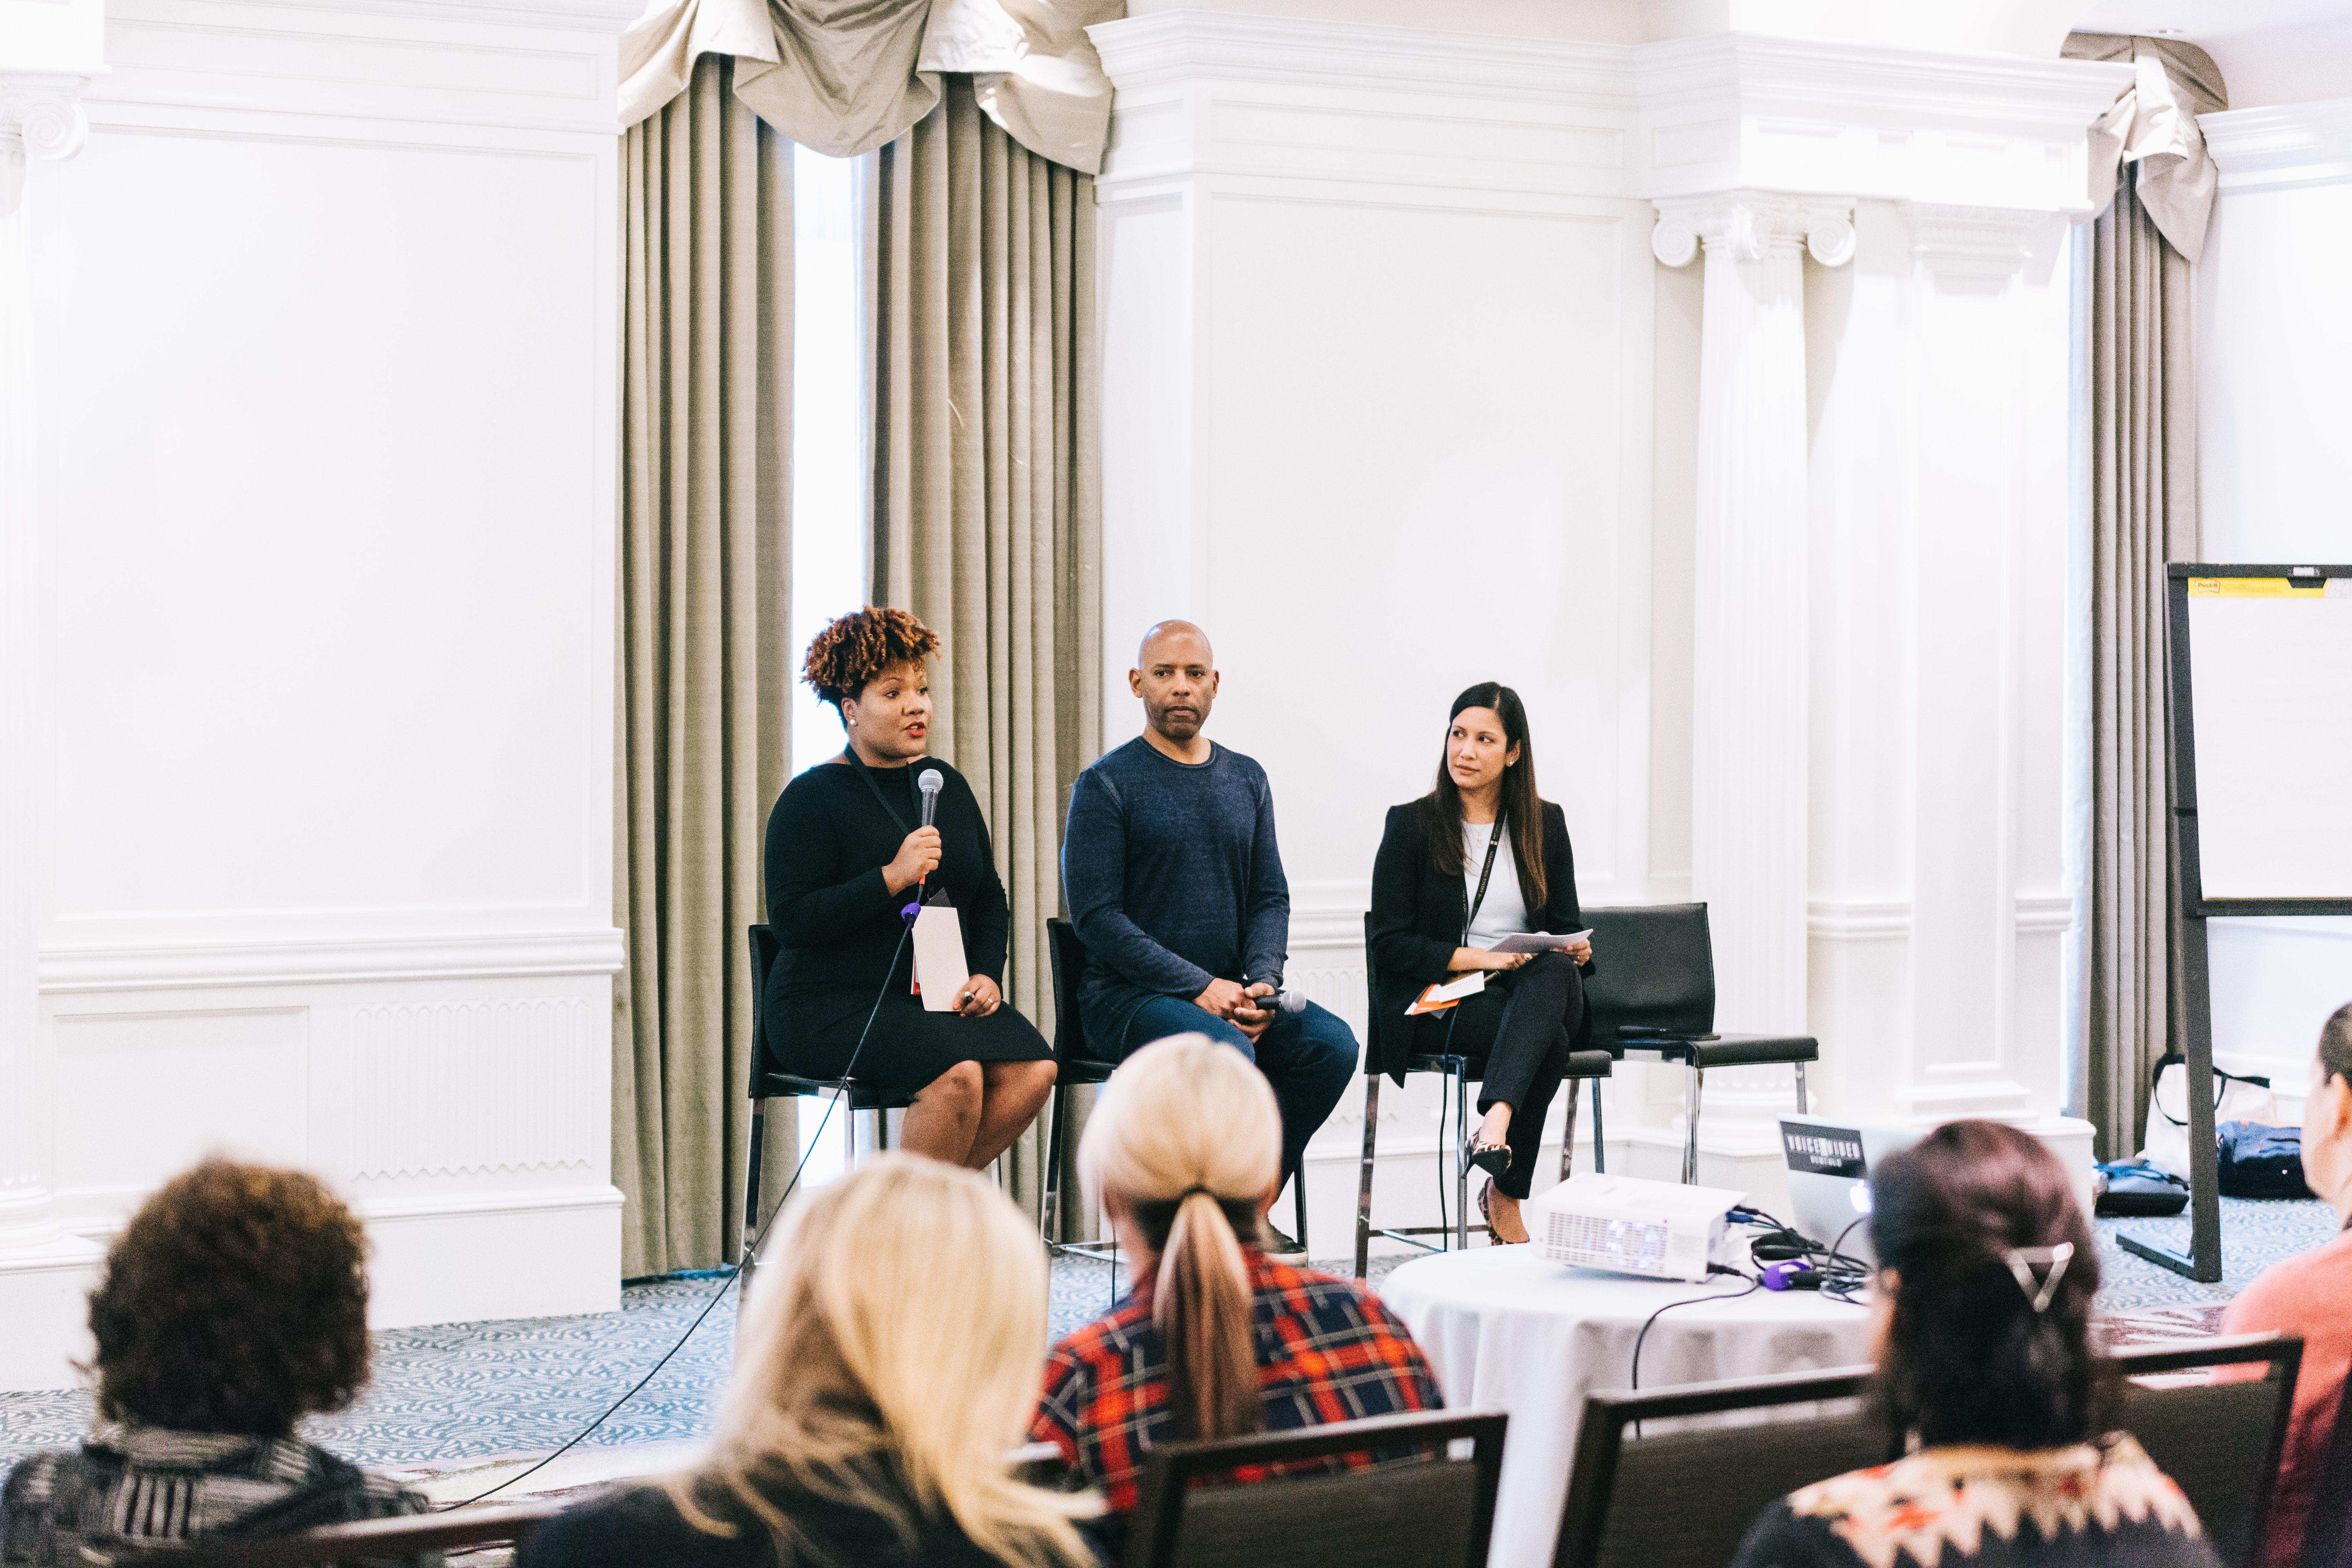 "<p>Tonya Mosley, Leslie Miley and Anusha Alikhan discuss diversity and inclusion at ComNet 2016. <a href=""https://www.flickr.com/photos/thecomnetwork/29651815864/in/album-72157664334746601/""><em>Photo by The Communications Network.</em></a></p>"